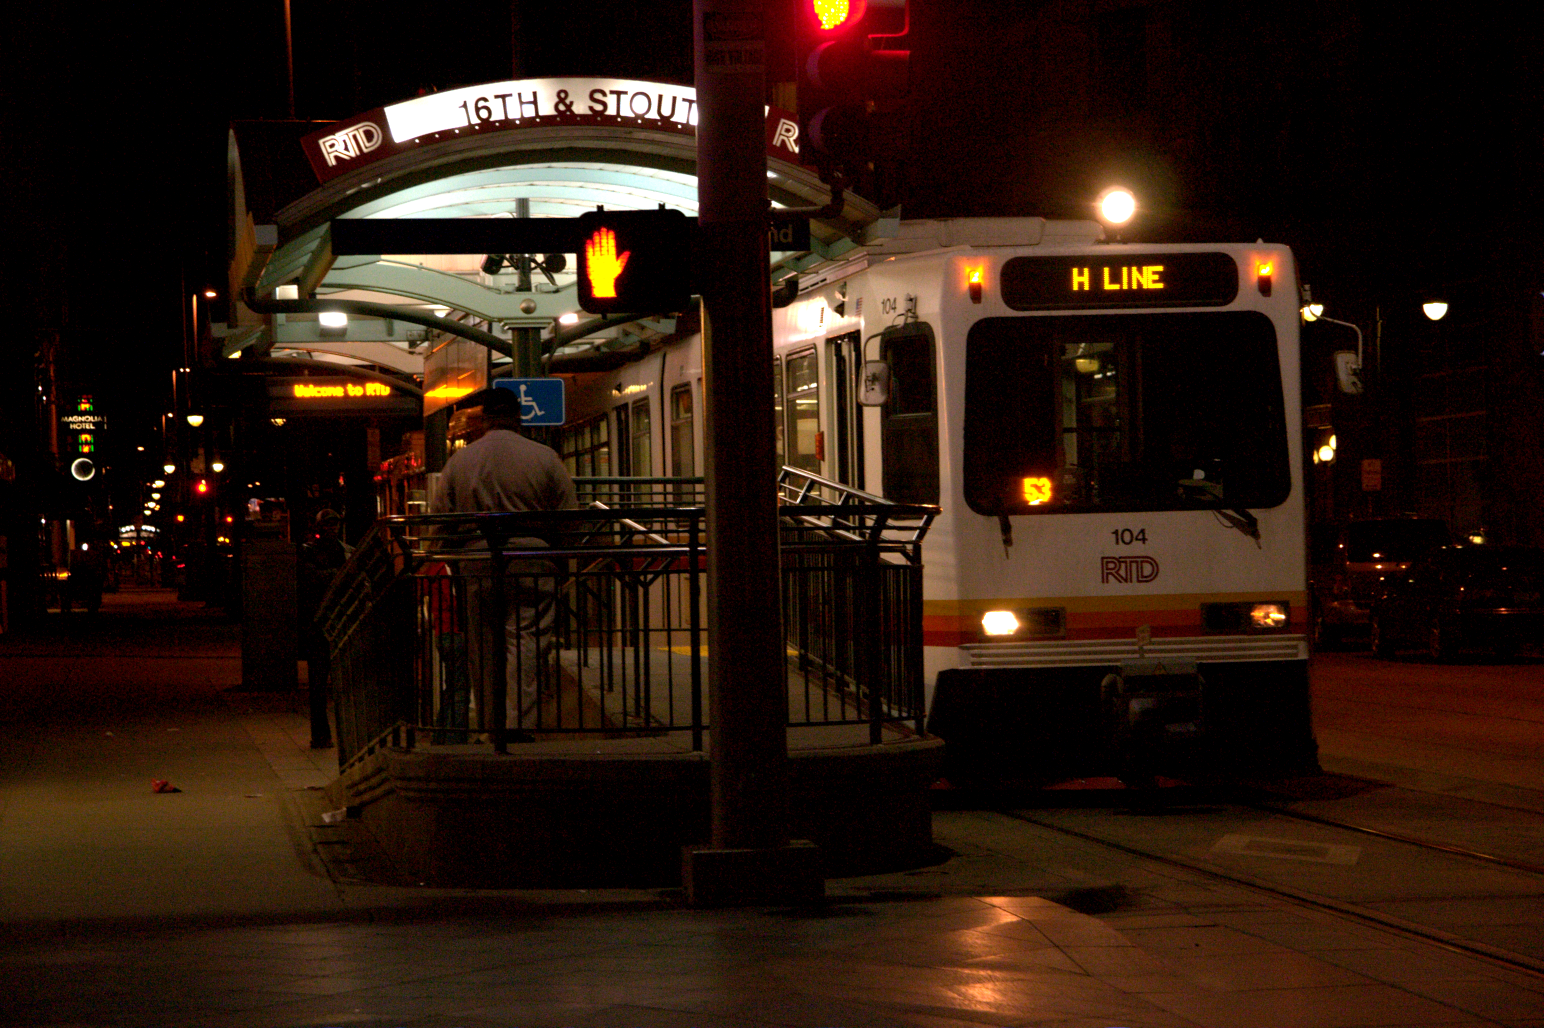 File:2481. H Line at 16th & Stout.png